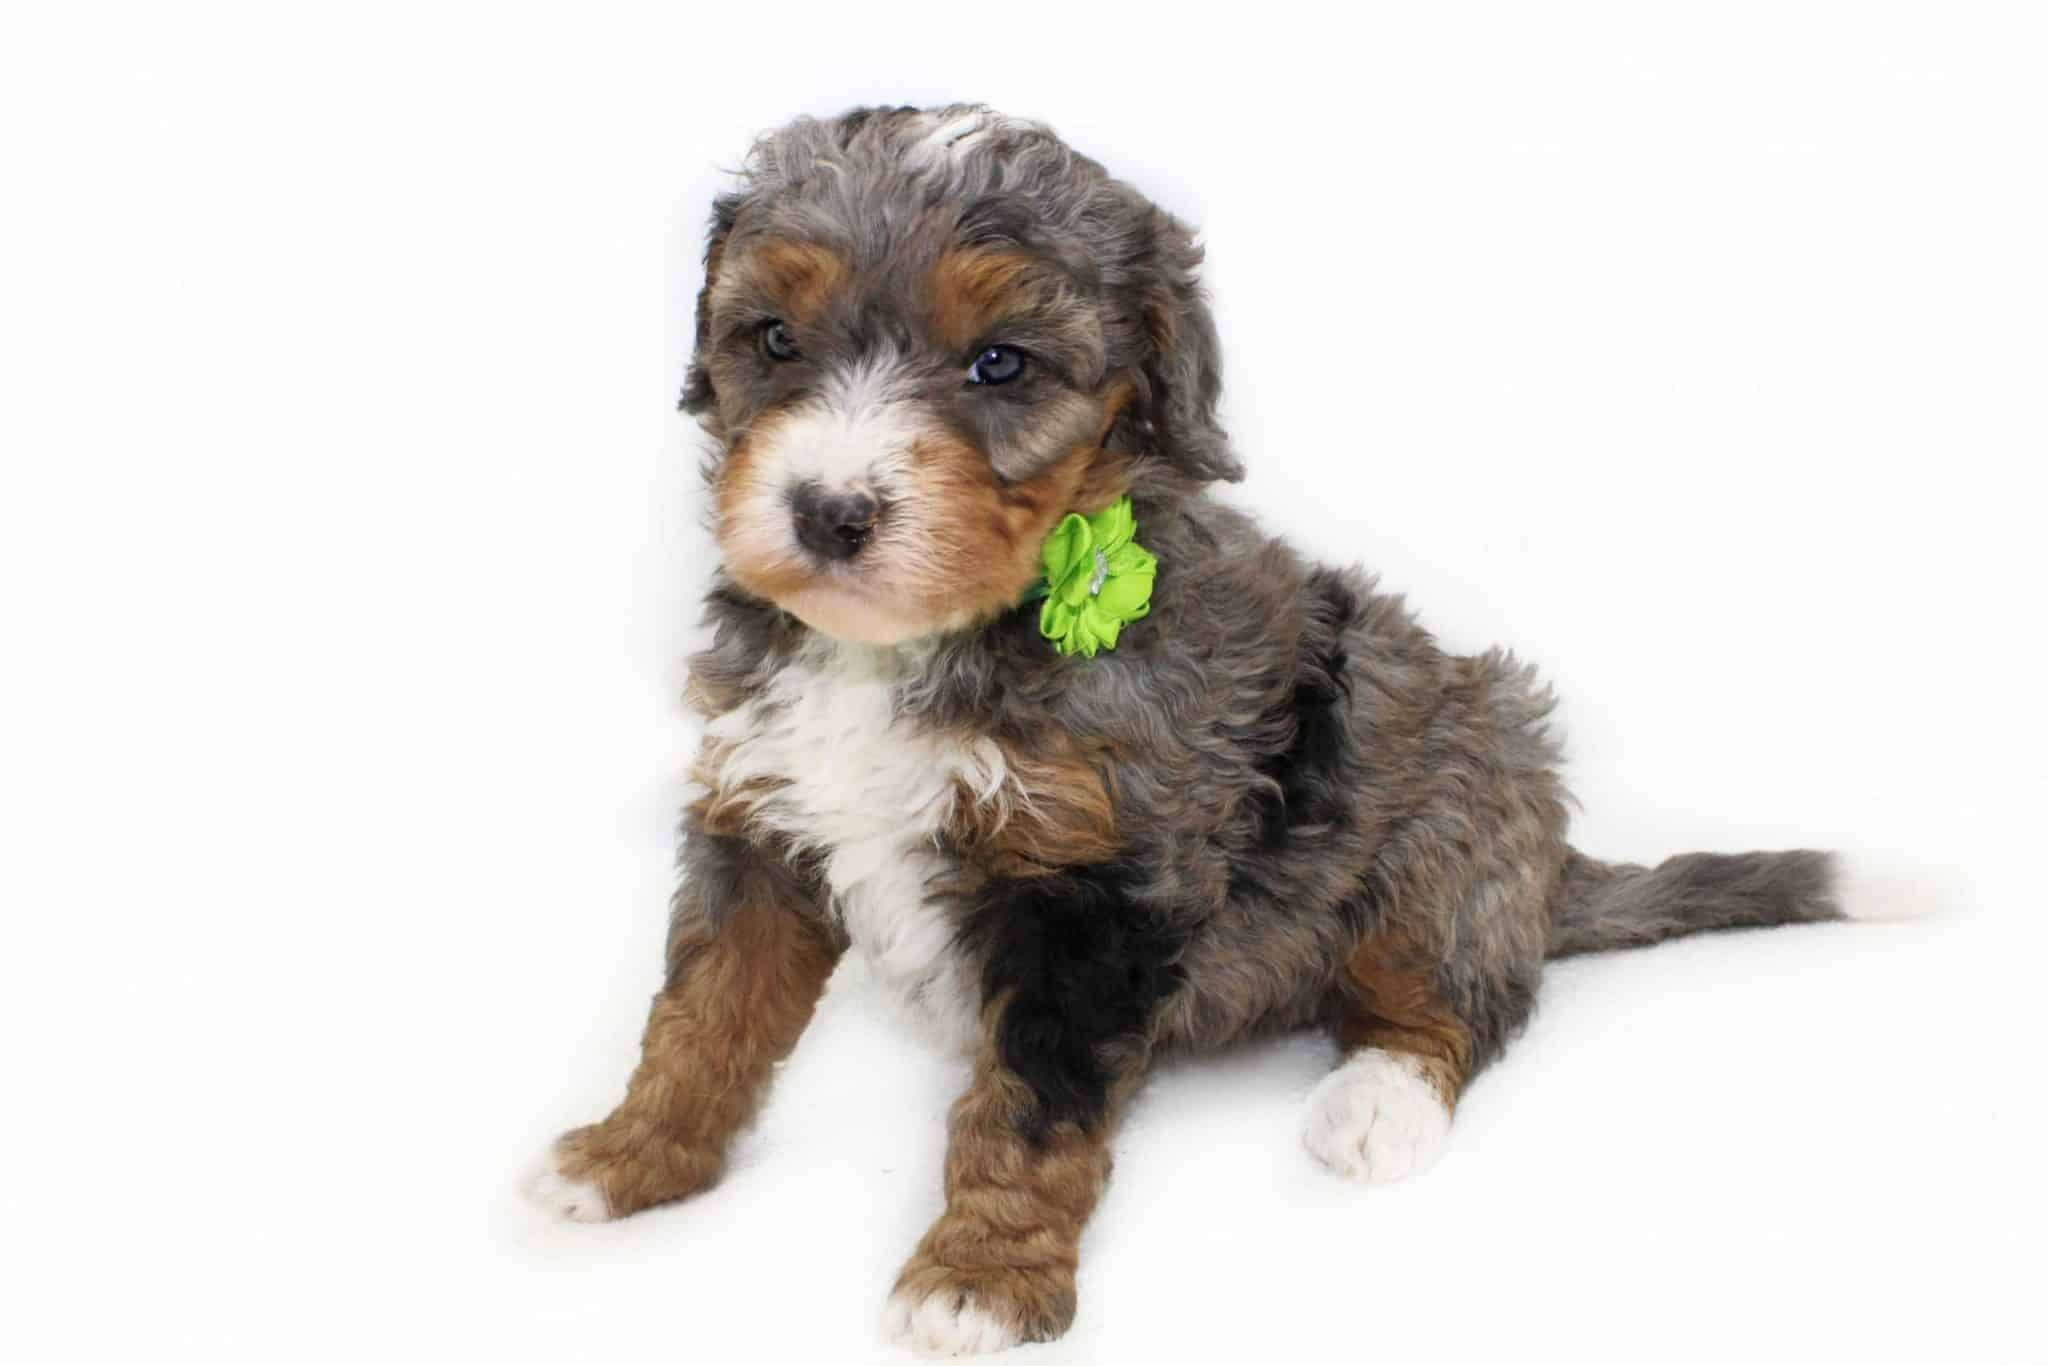 merle bernedoodles, bernedoodles, bernedoodles near me, bernedoodle puppies for sale, micro mini bernedoodles, petite bernedoodles, standard bernedoodles